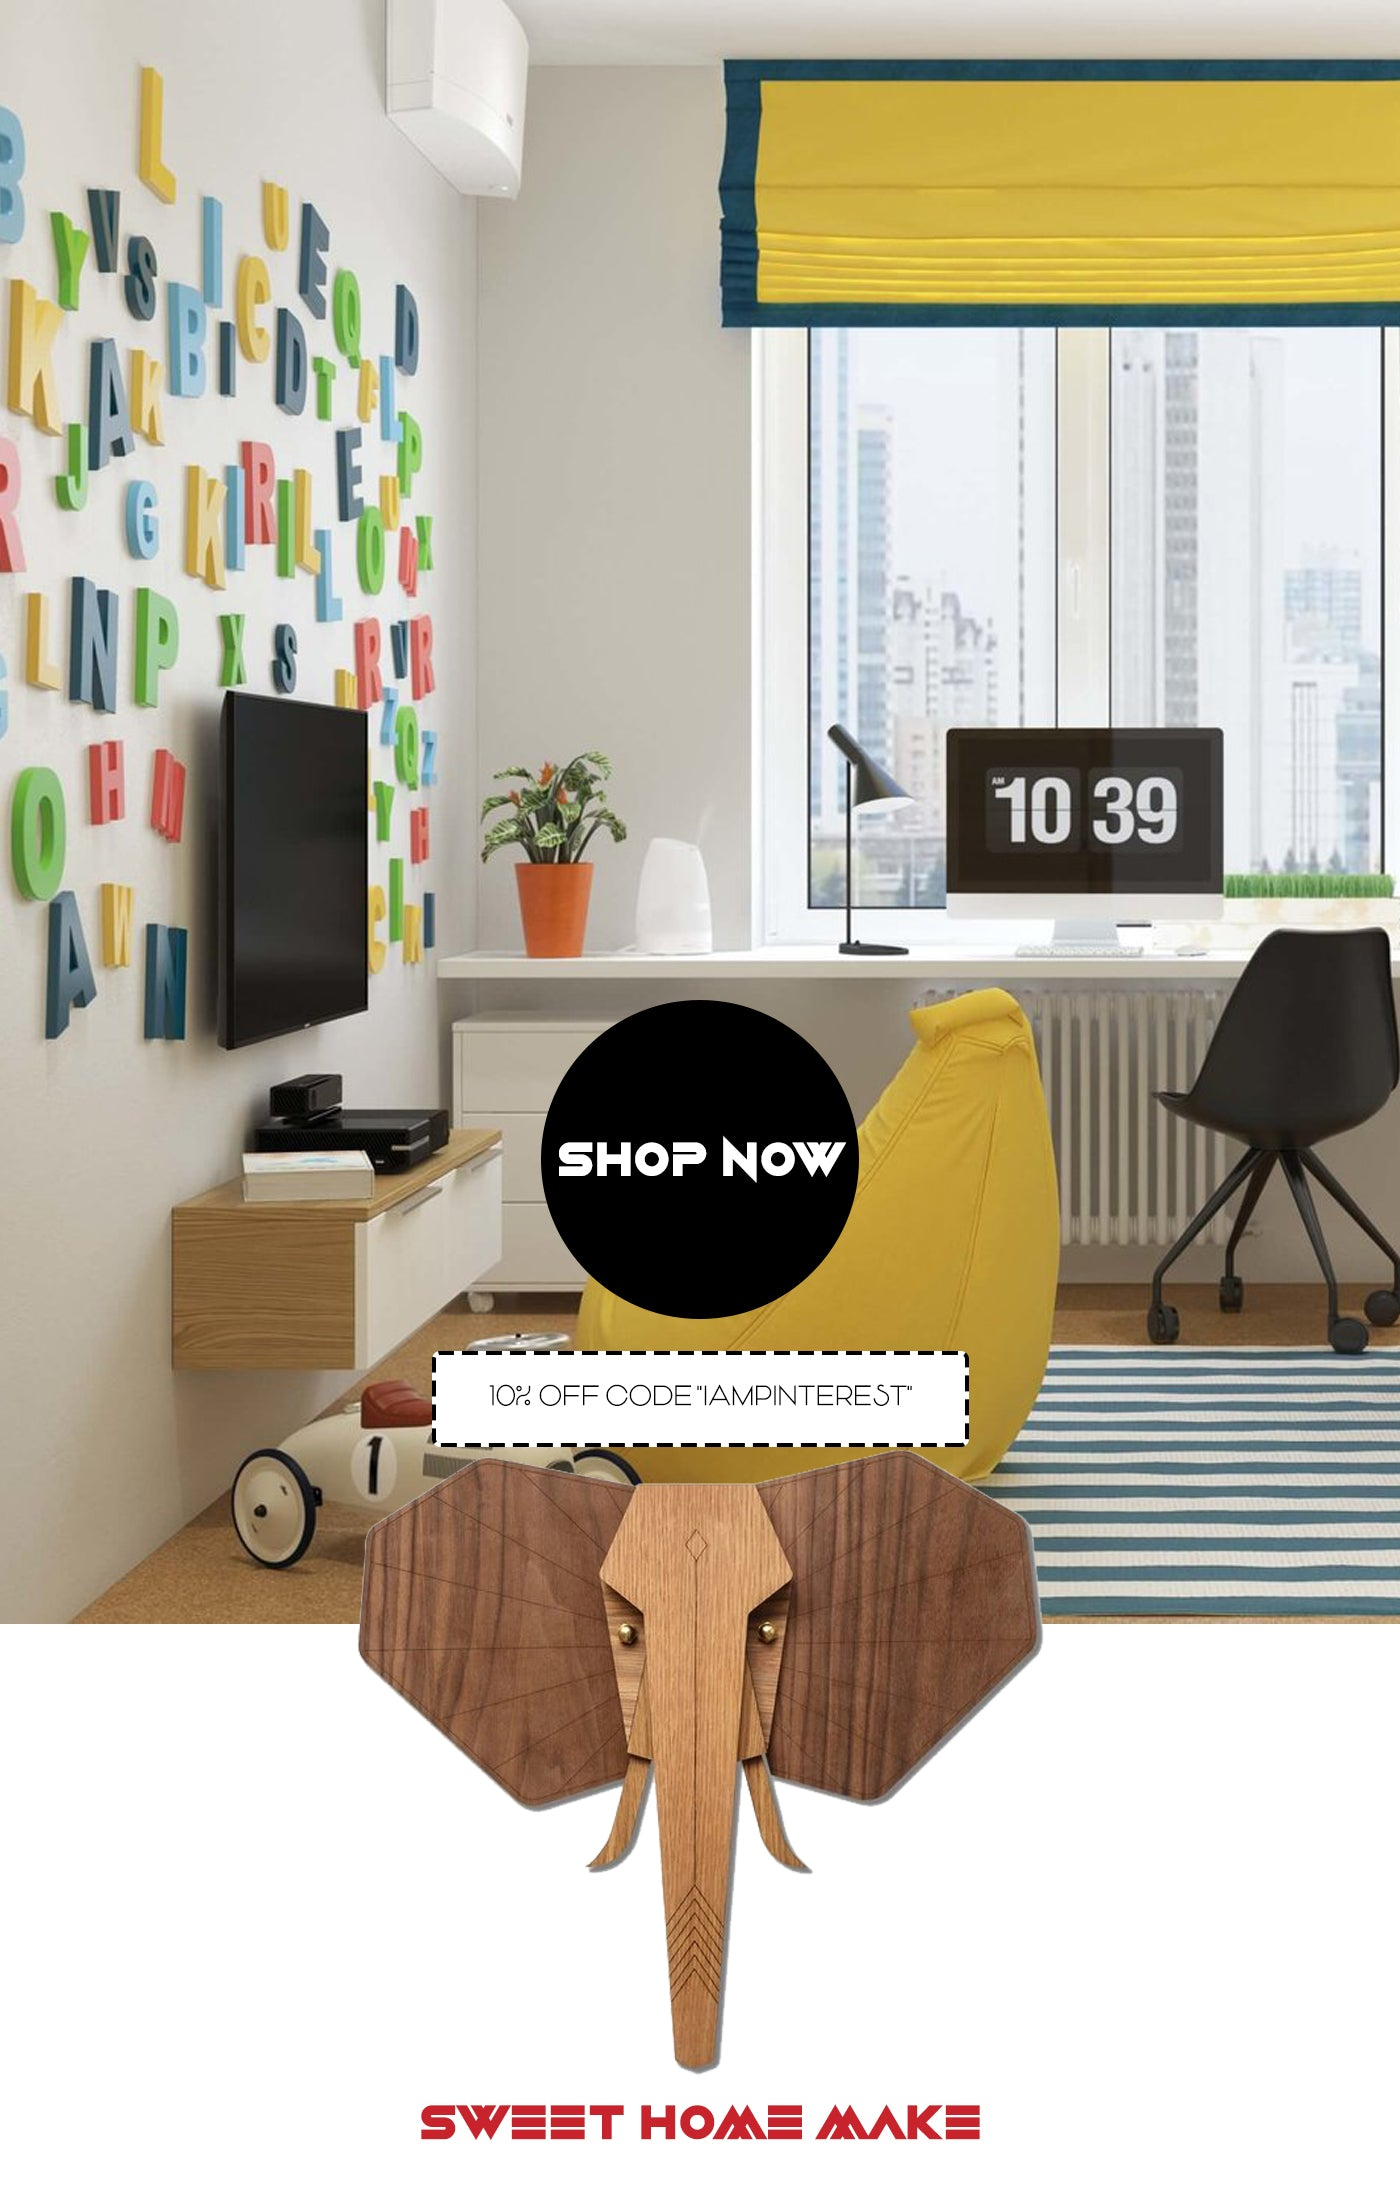 Wooden Elephant Wall Art for Nursery Room and Kids Room Decor